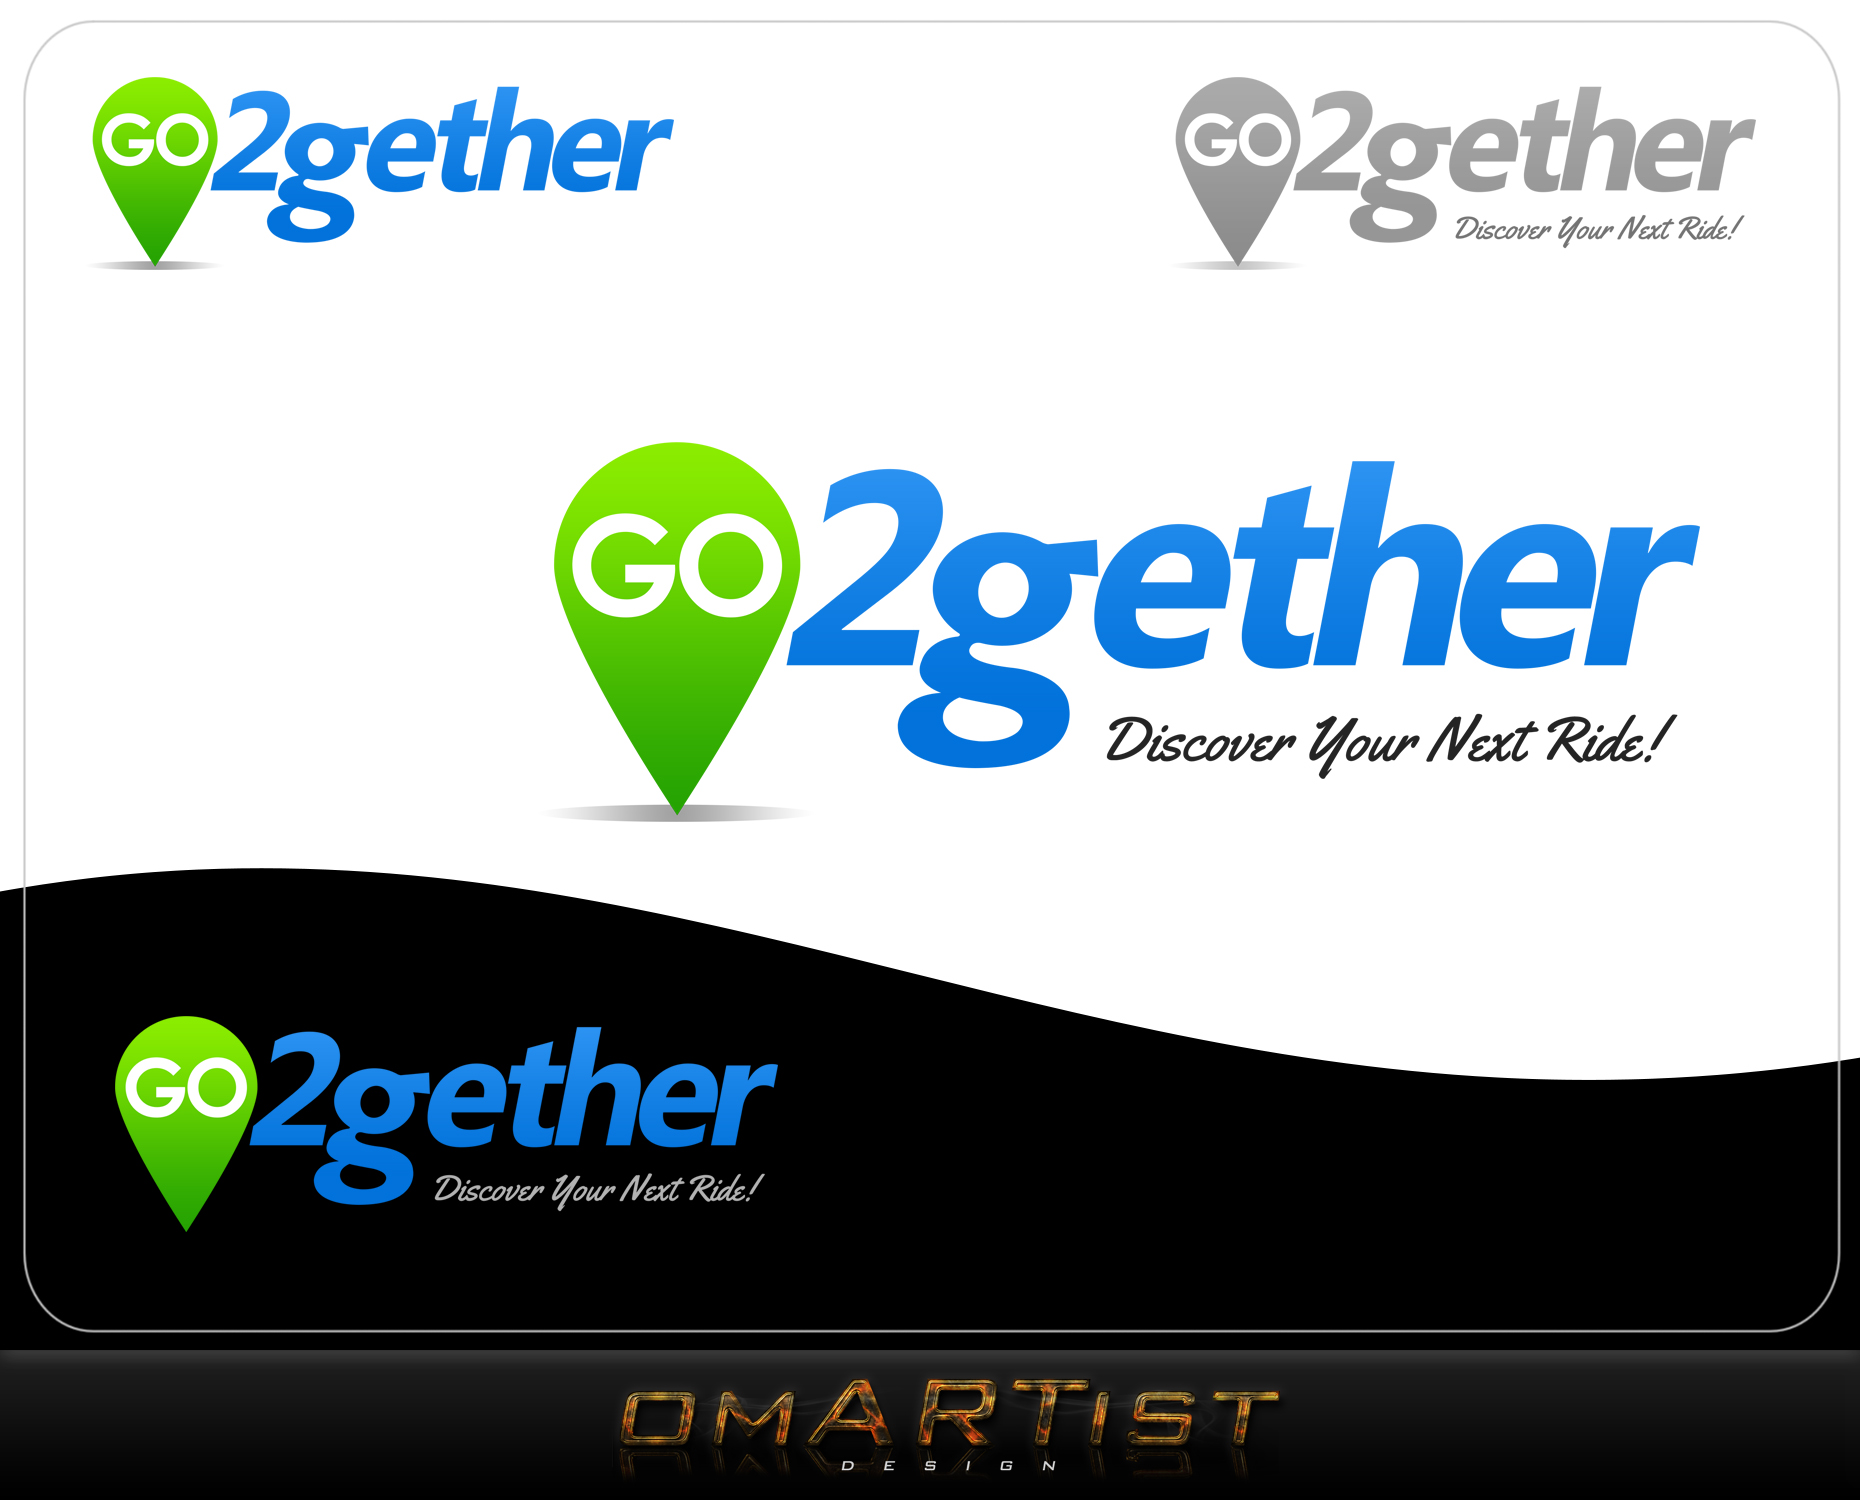 Logo Design by omARTist - Entry No. 163 in the Logo Design Contest Captivating Logo Design for GO2GETHER.